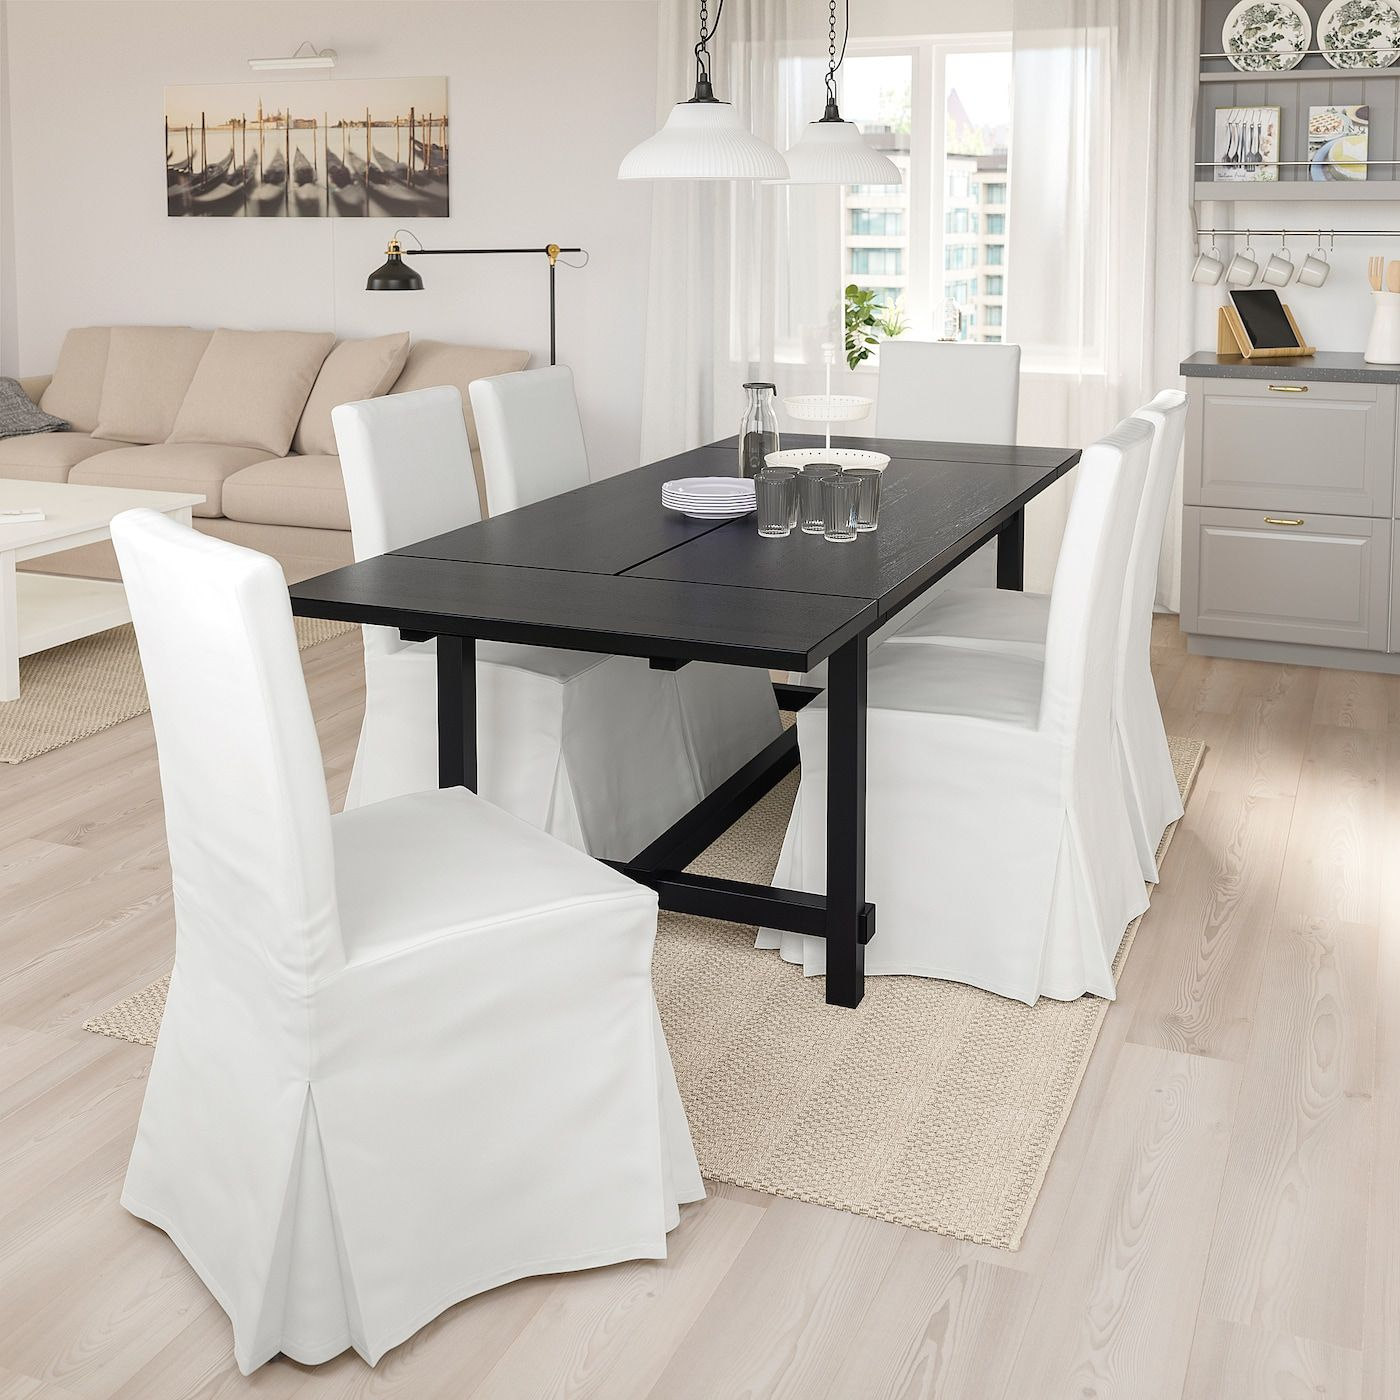 IKEA - NORDVIKEN / HENRIKSDAL Table and 4 chairs in 2020 ...